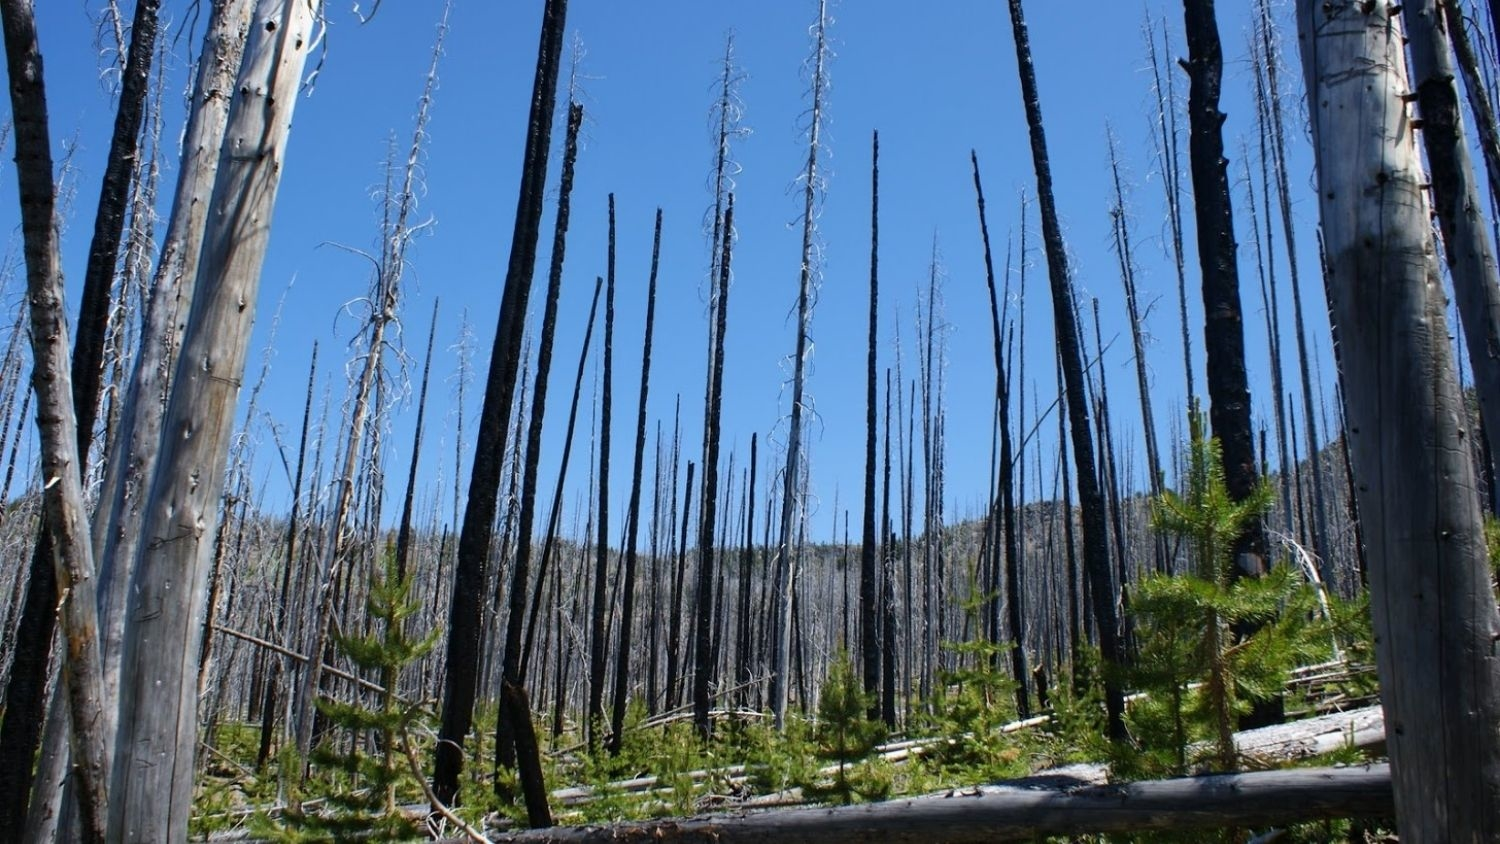 Forest in Oregon damaged by fire.